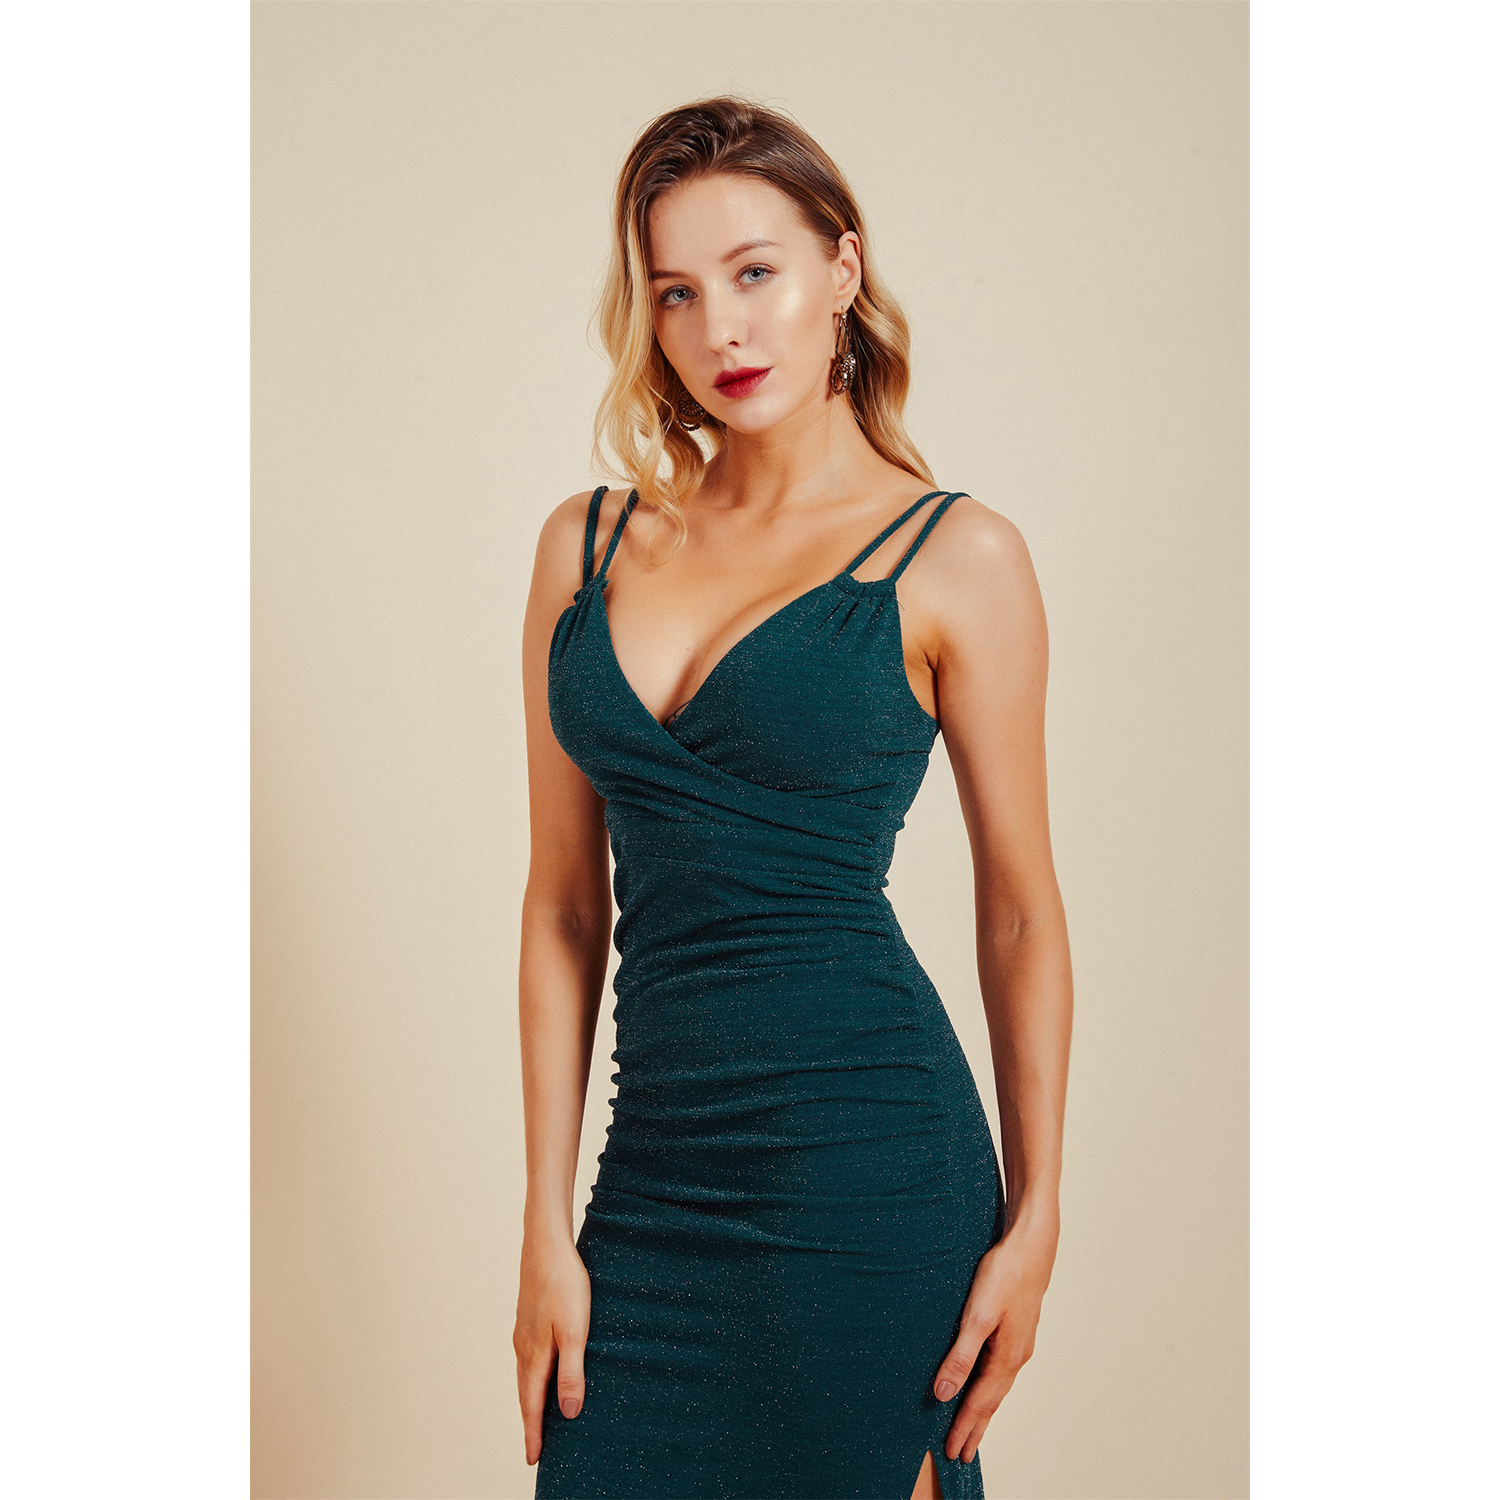 2020 emerald green double straps sexy ladies night out wear party girl high street modern birthday evening outfit club dresses